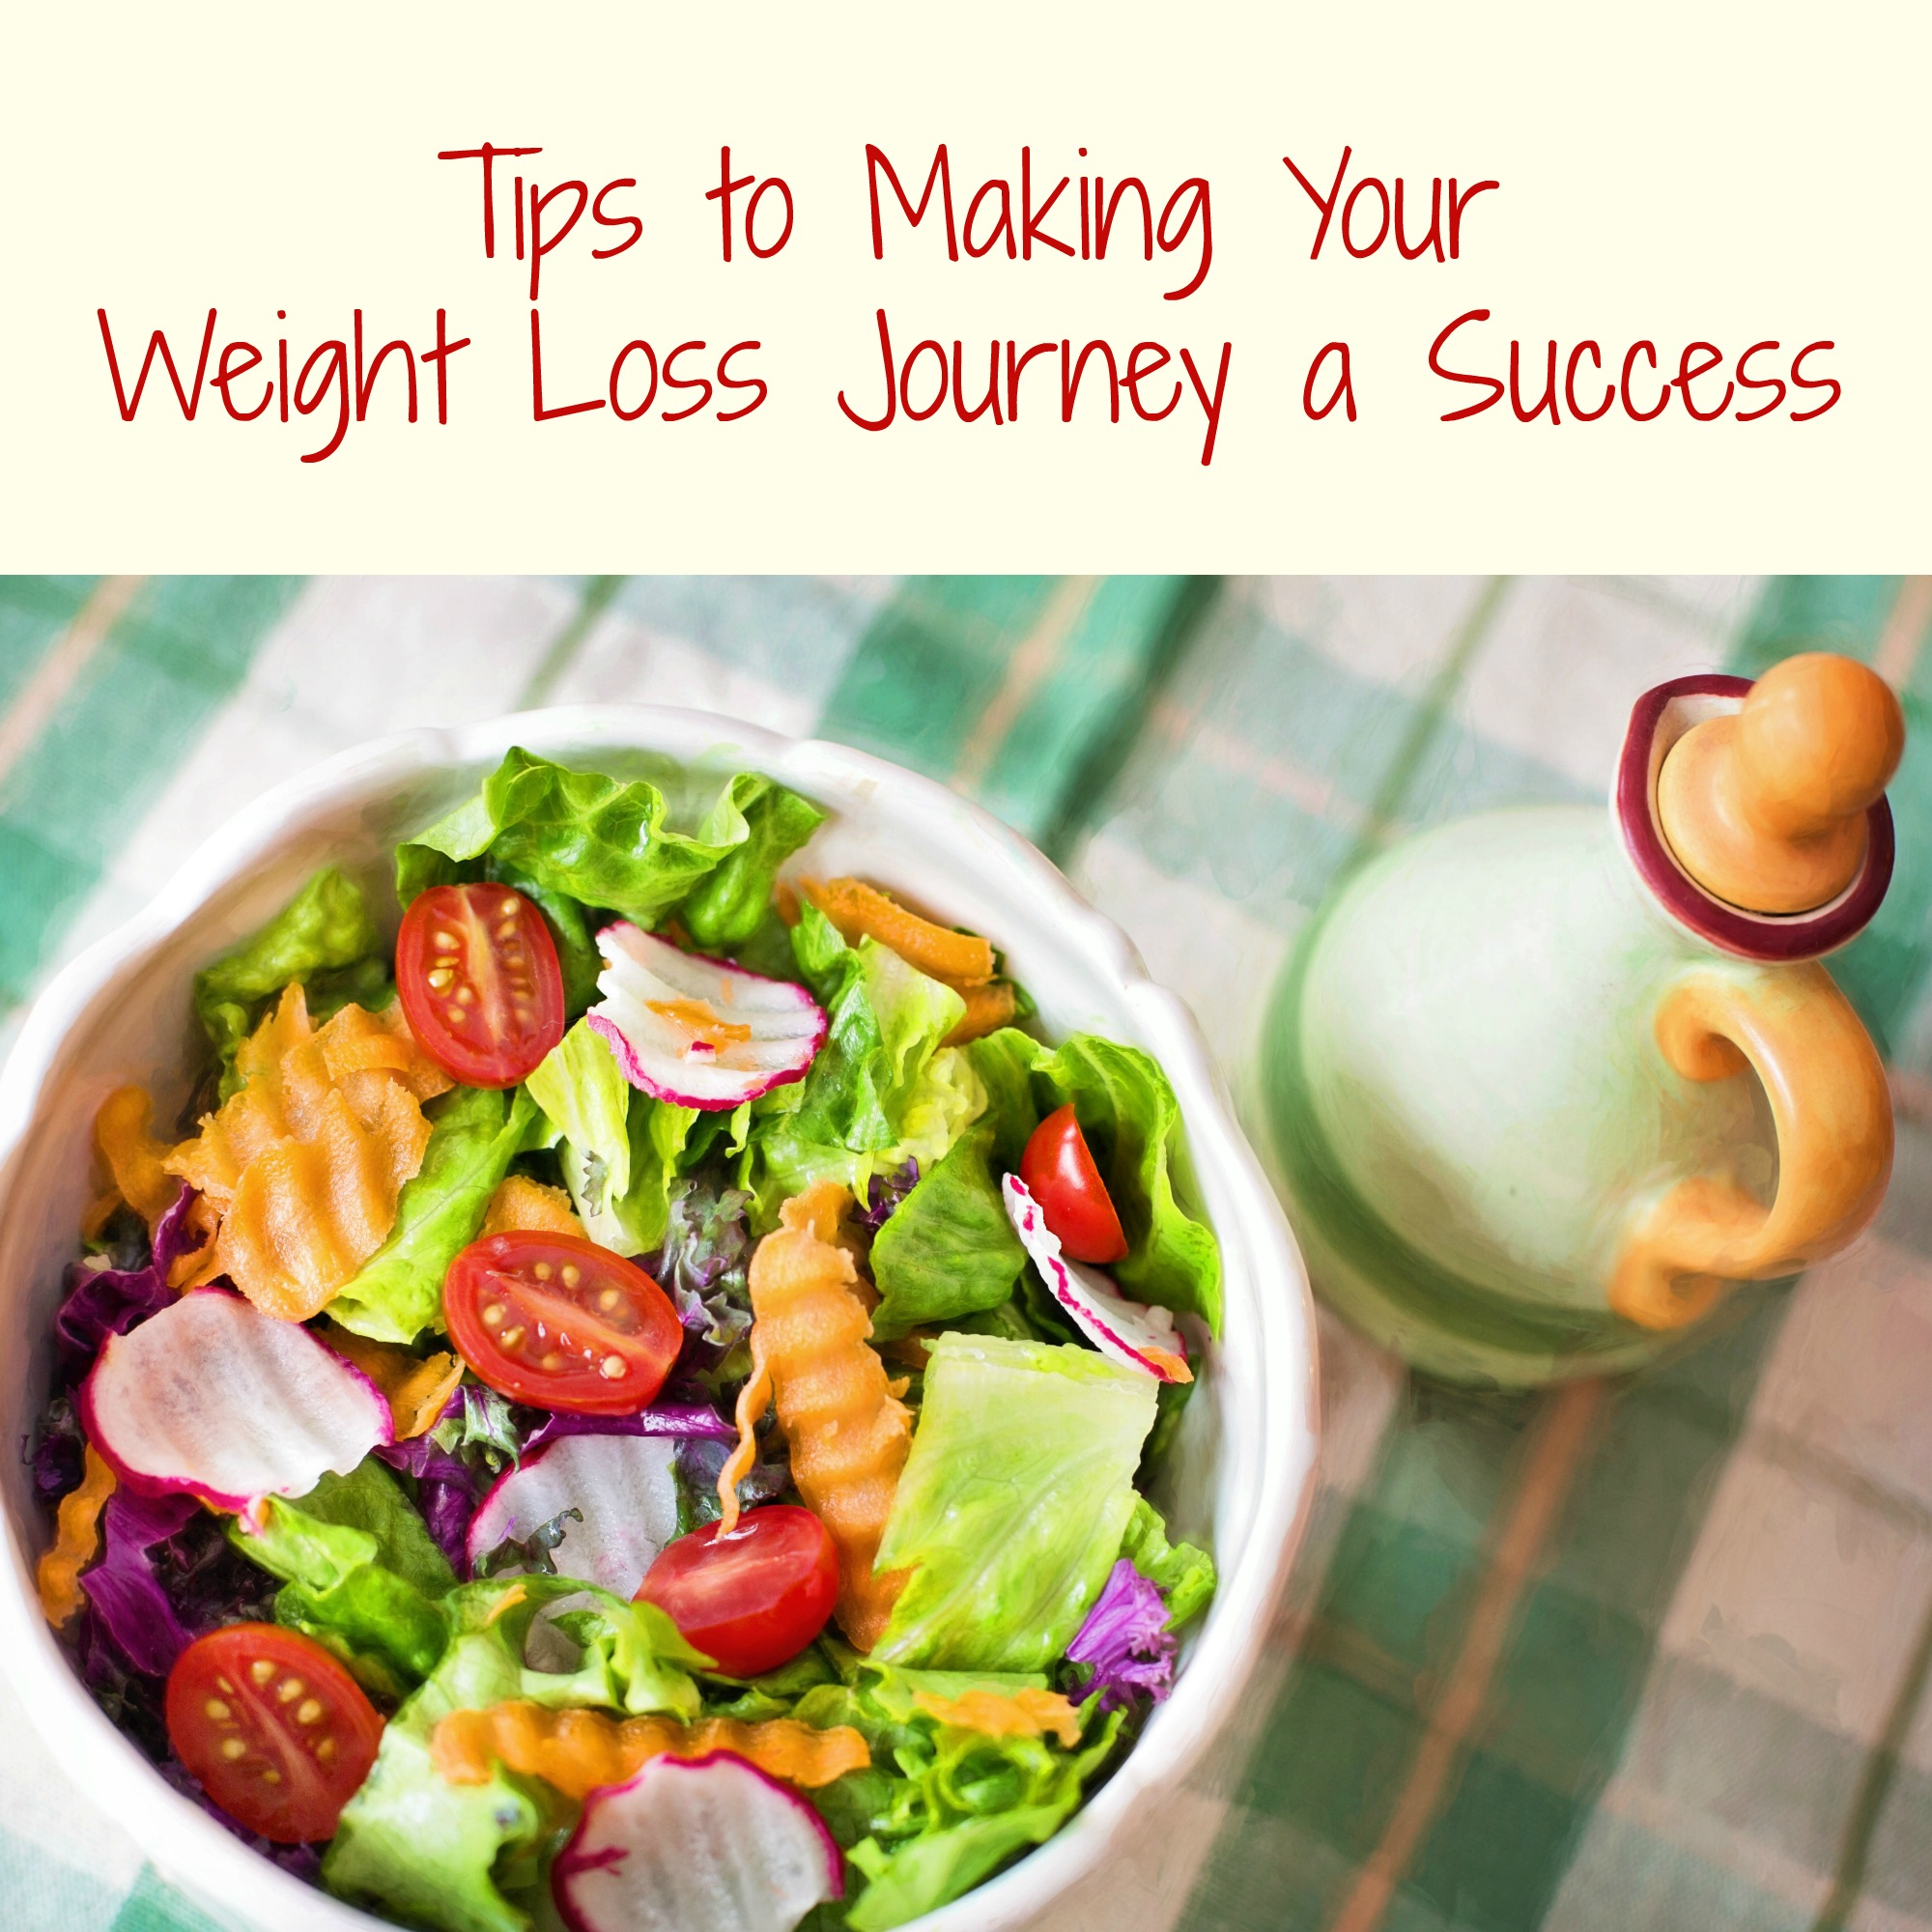 Tips to Making Your Weight Loss Journey a Success